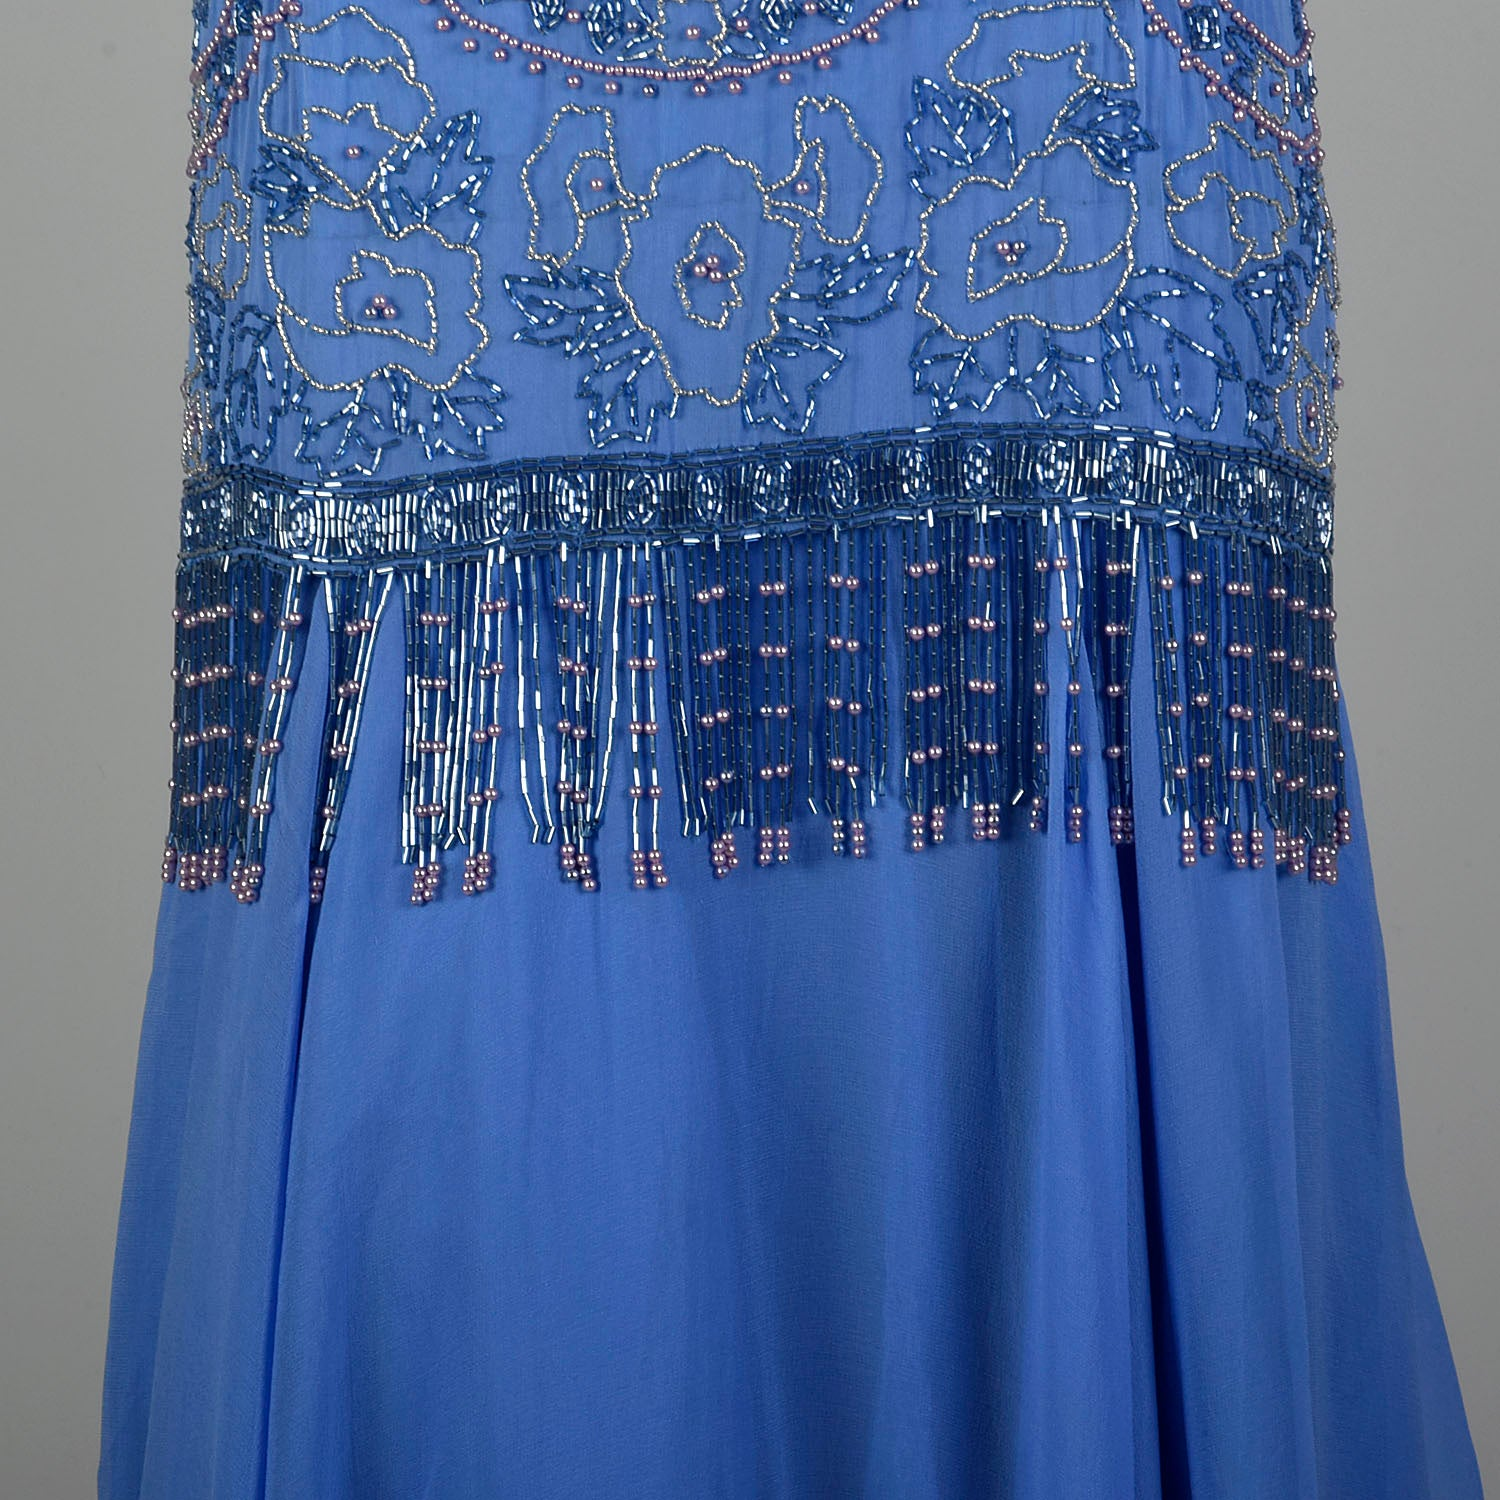 1980s Blue Silk Evening Gown Beaded Formal Dress Modest Drop Waist